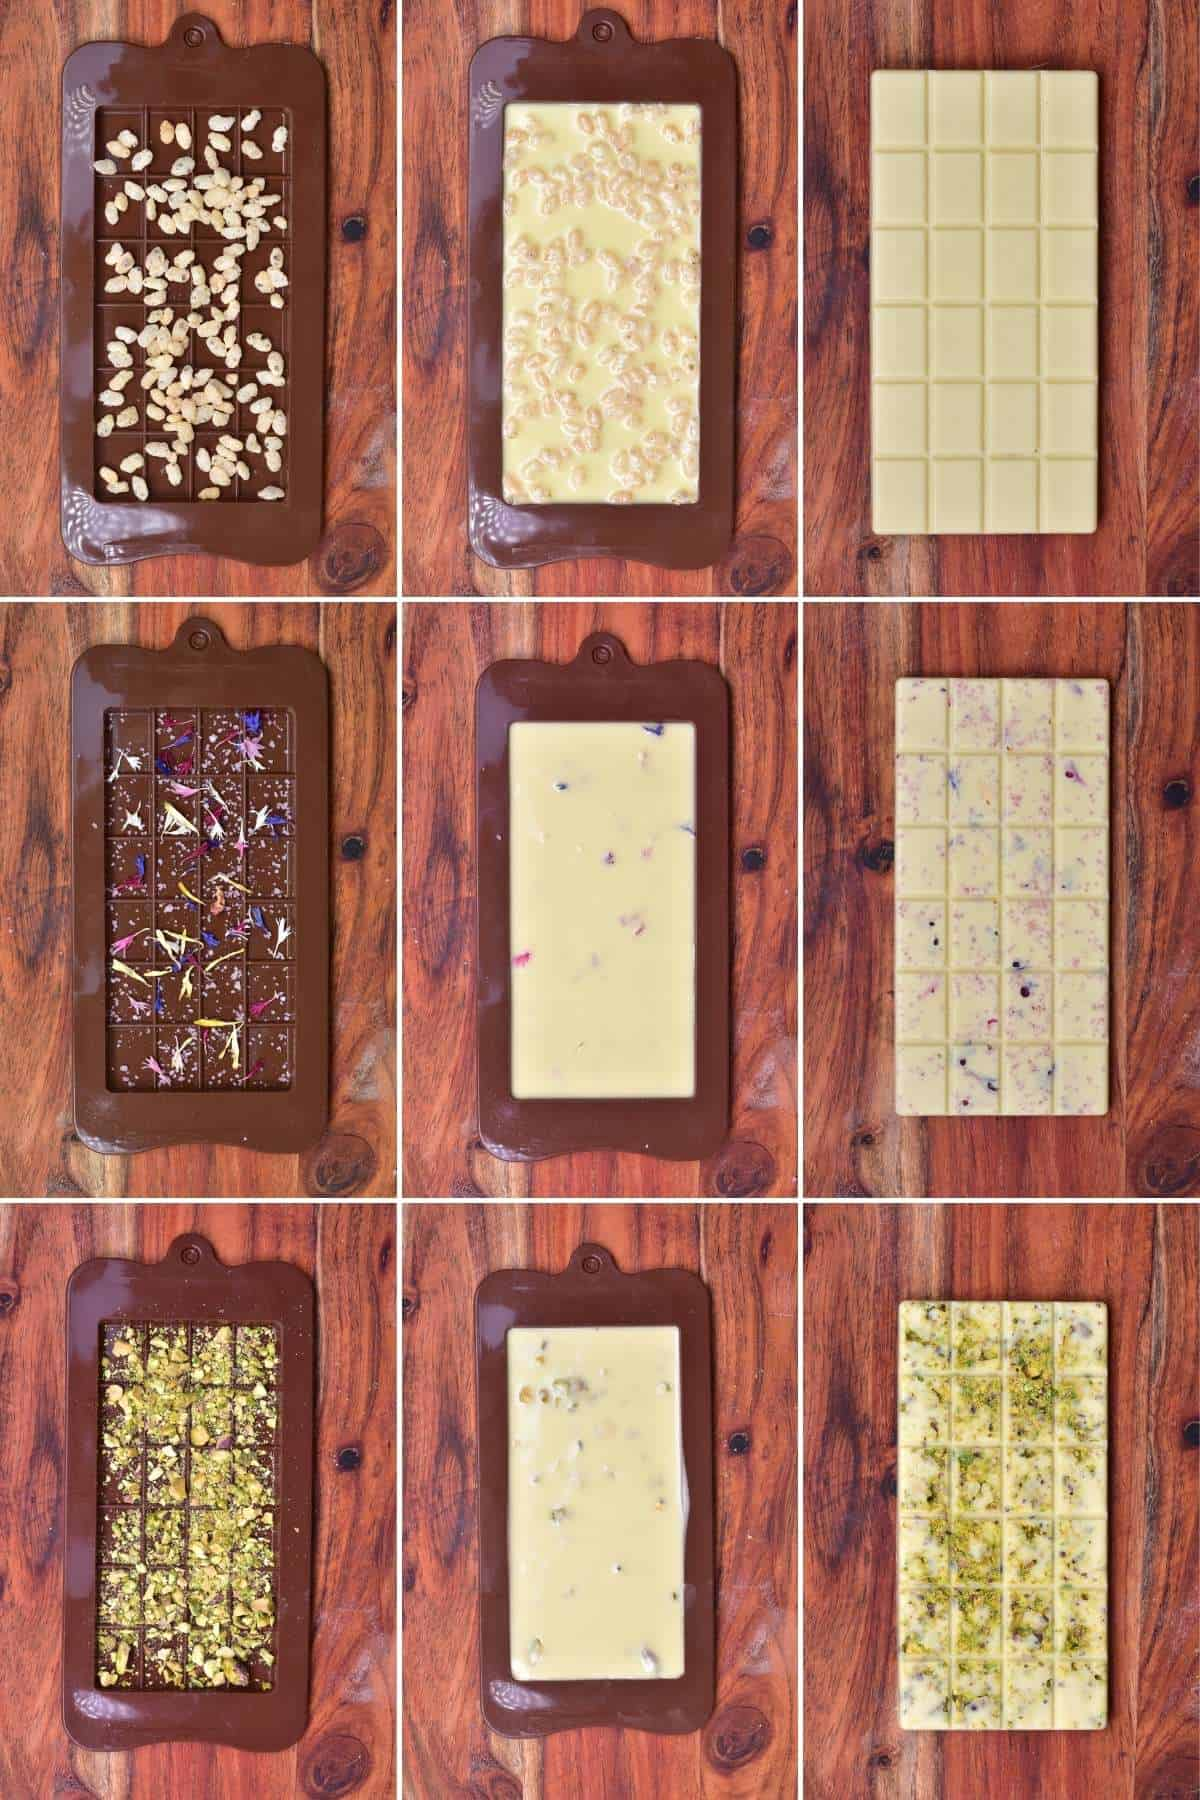 White chocolate with different toppings